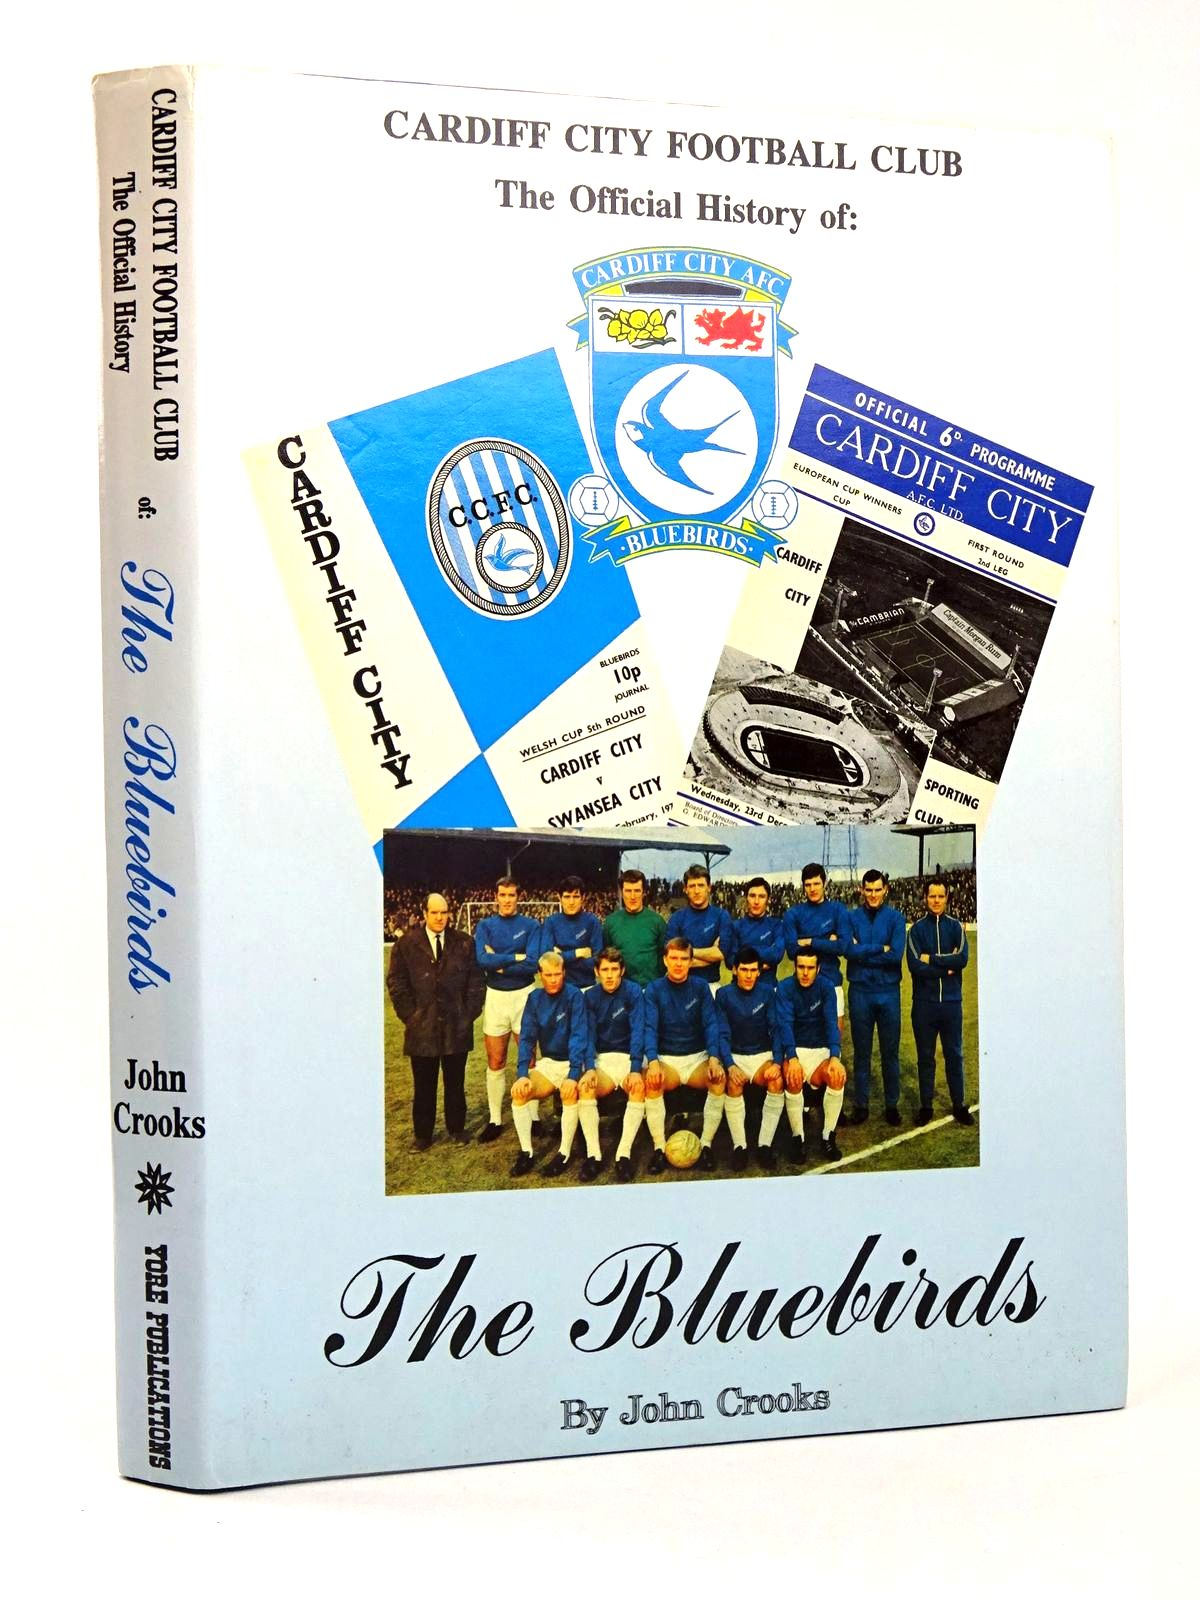 Photo of CARDIFF CITY FOOTBALL CLUB THE OFFICIAL HISTORY OF: THE BLUEBIRDS- Stock Number: 1818549